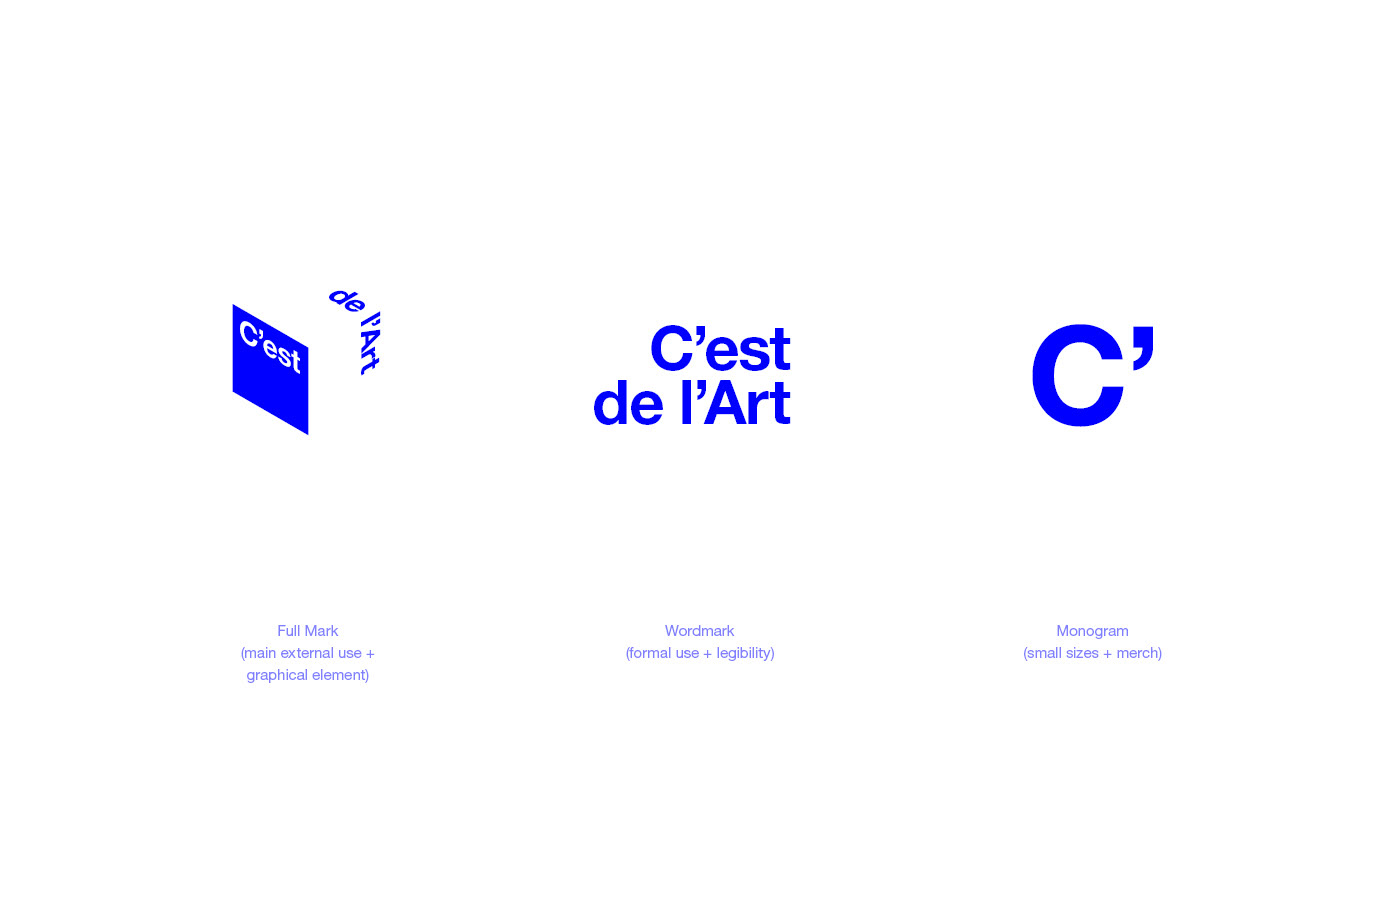 C'est de l'Art logo and wordmark